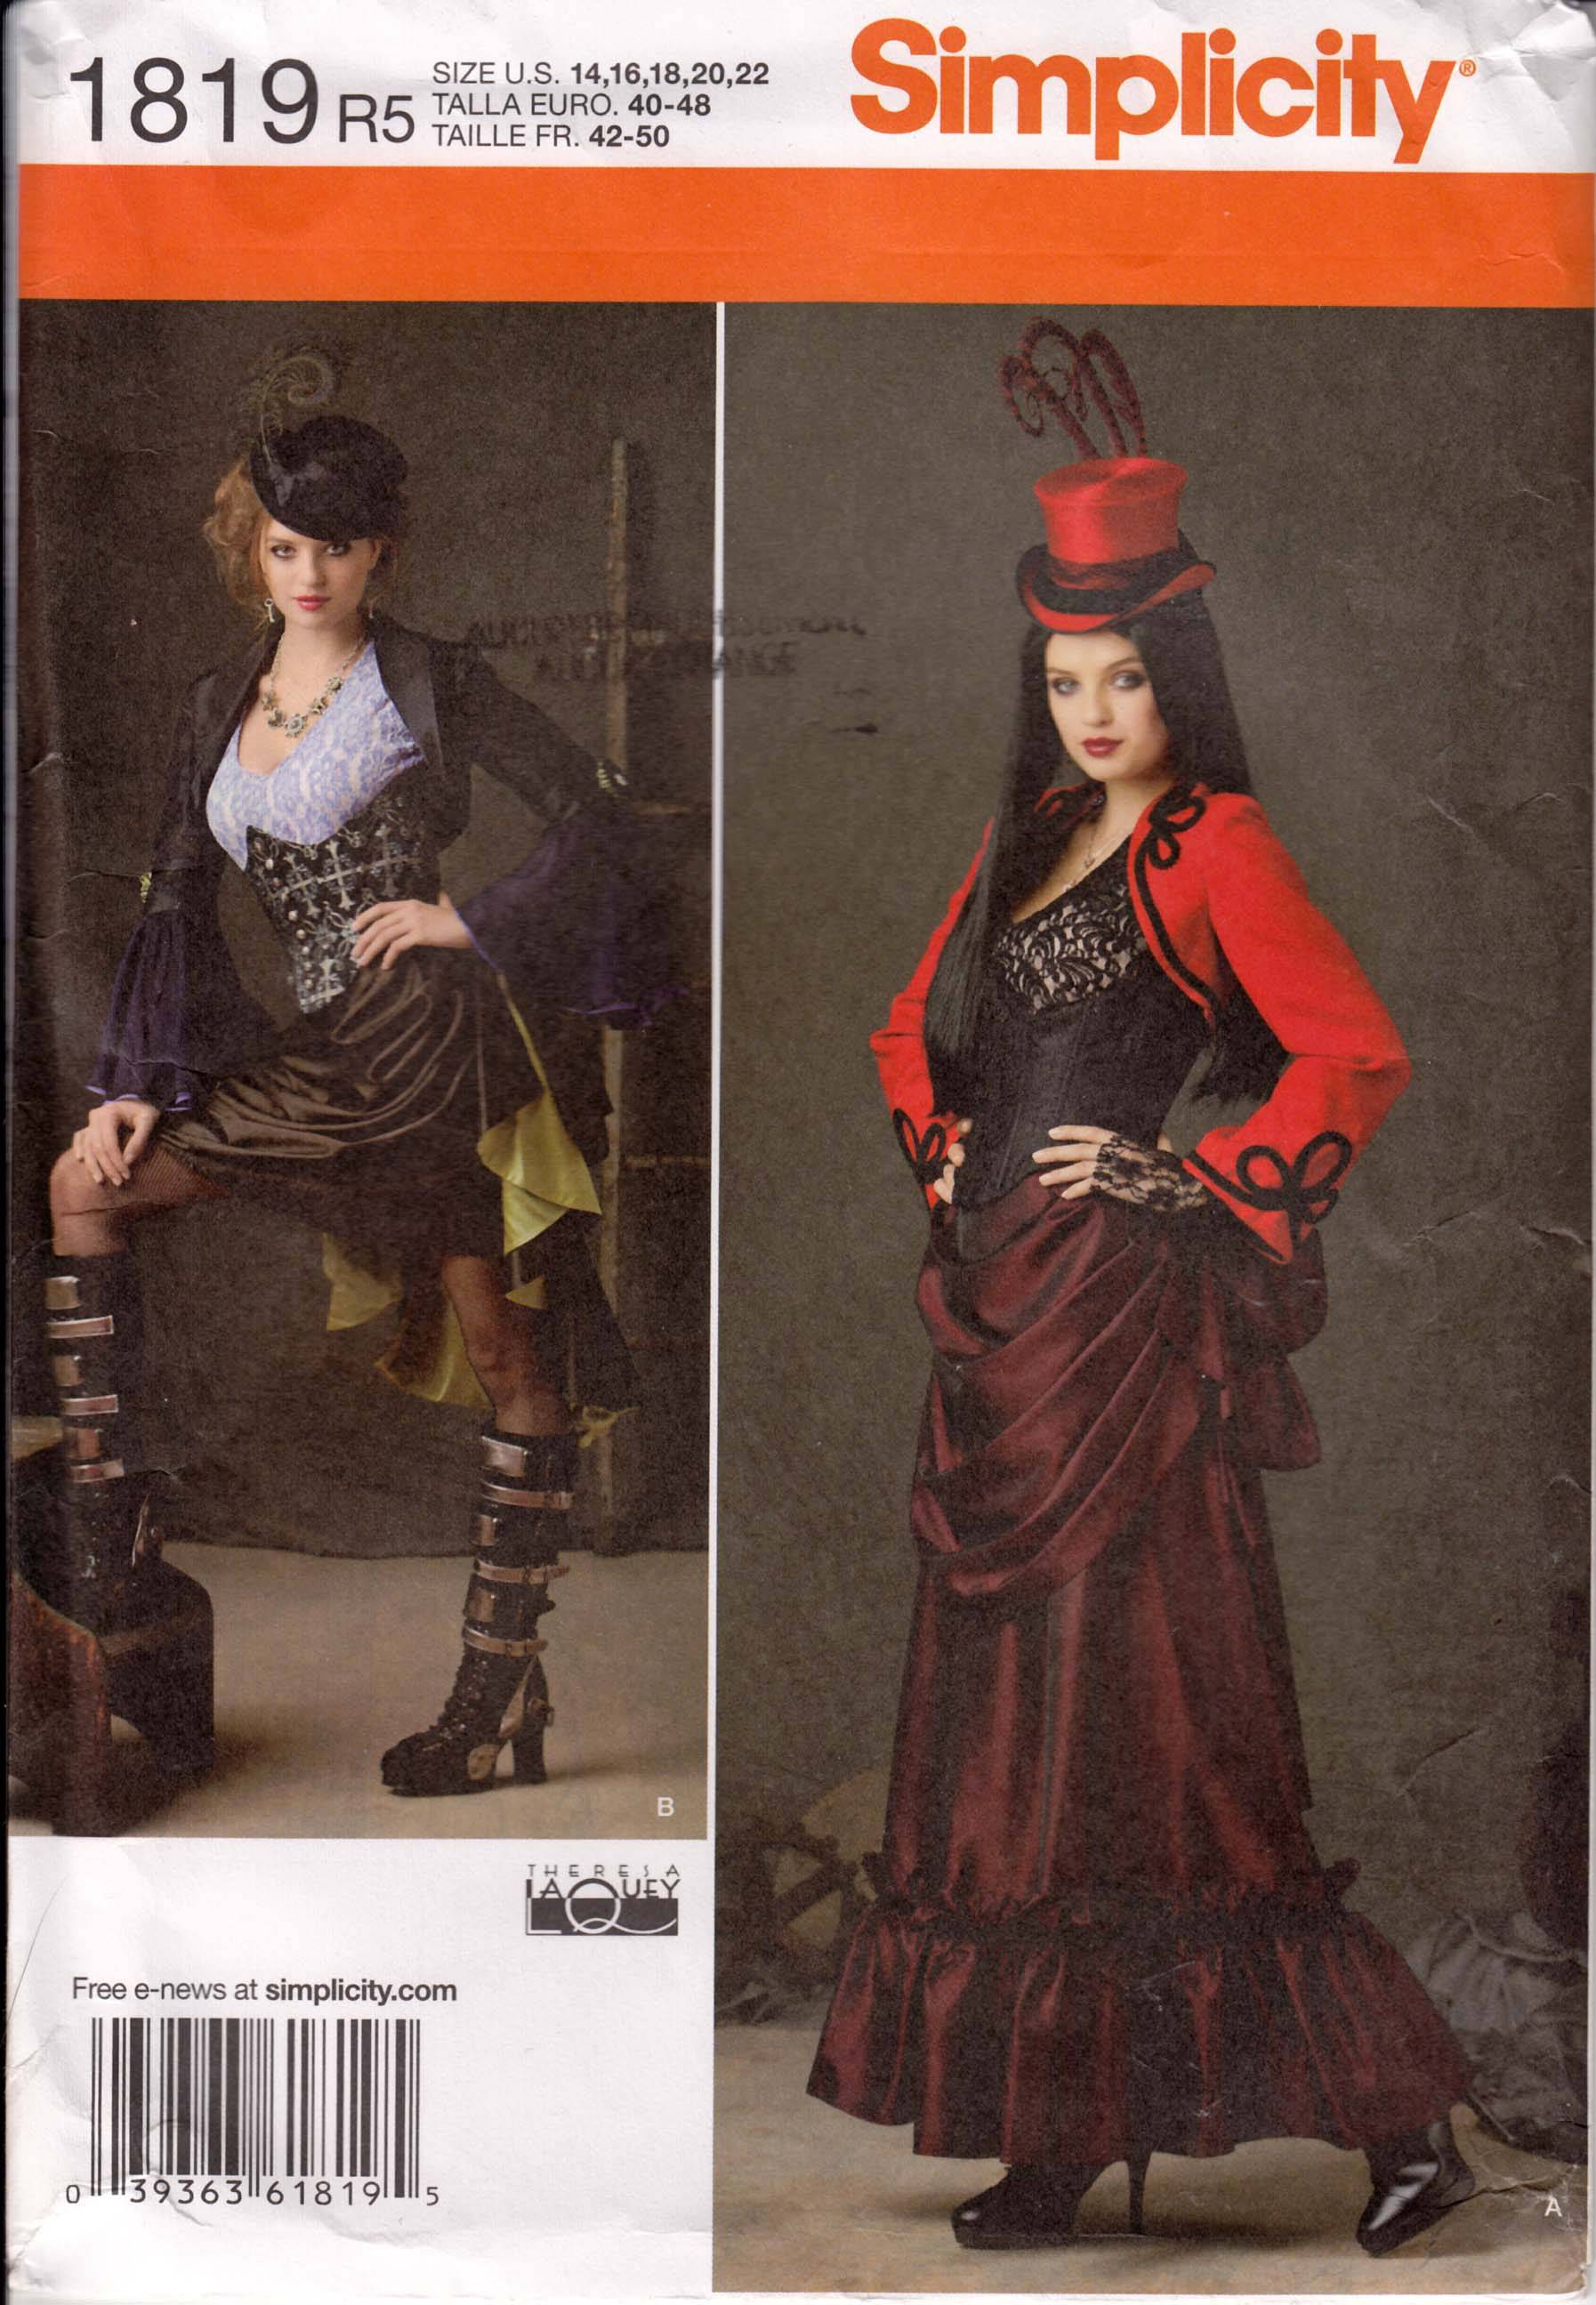 New steampunk pattern by Simplicity